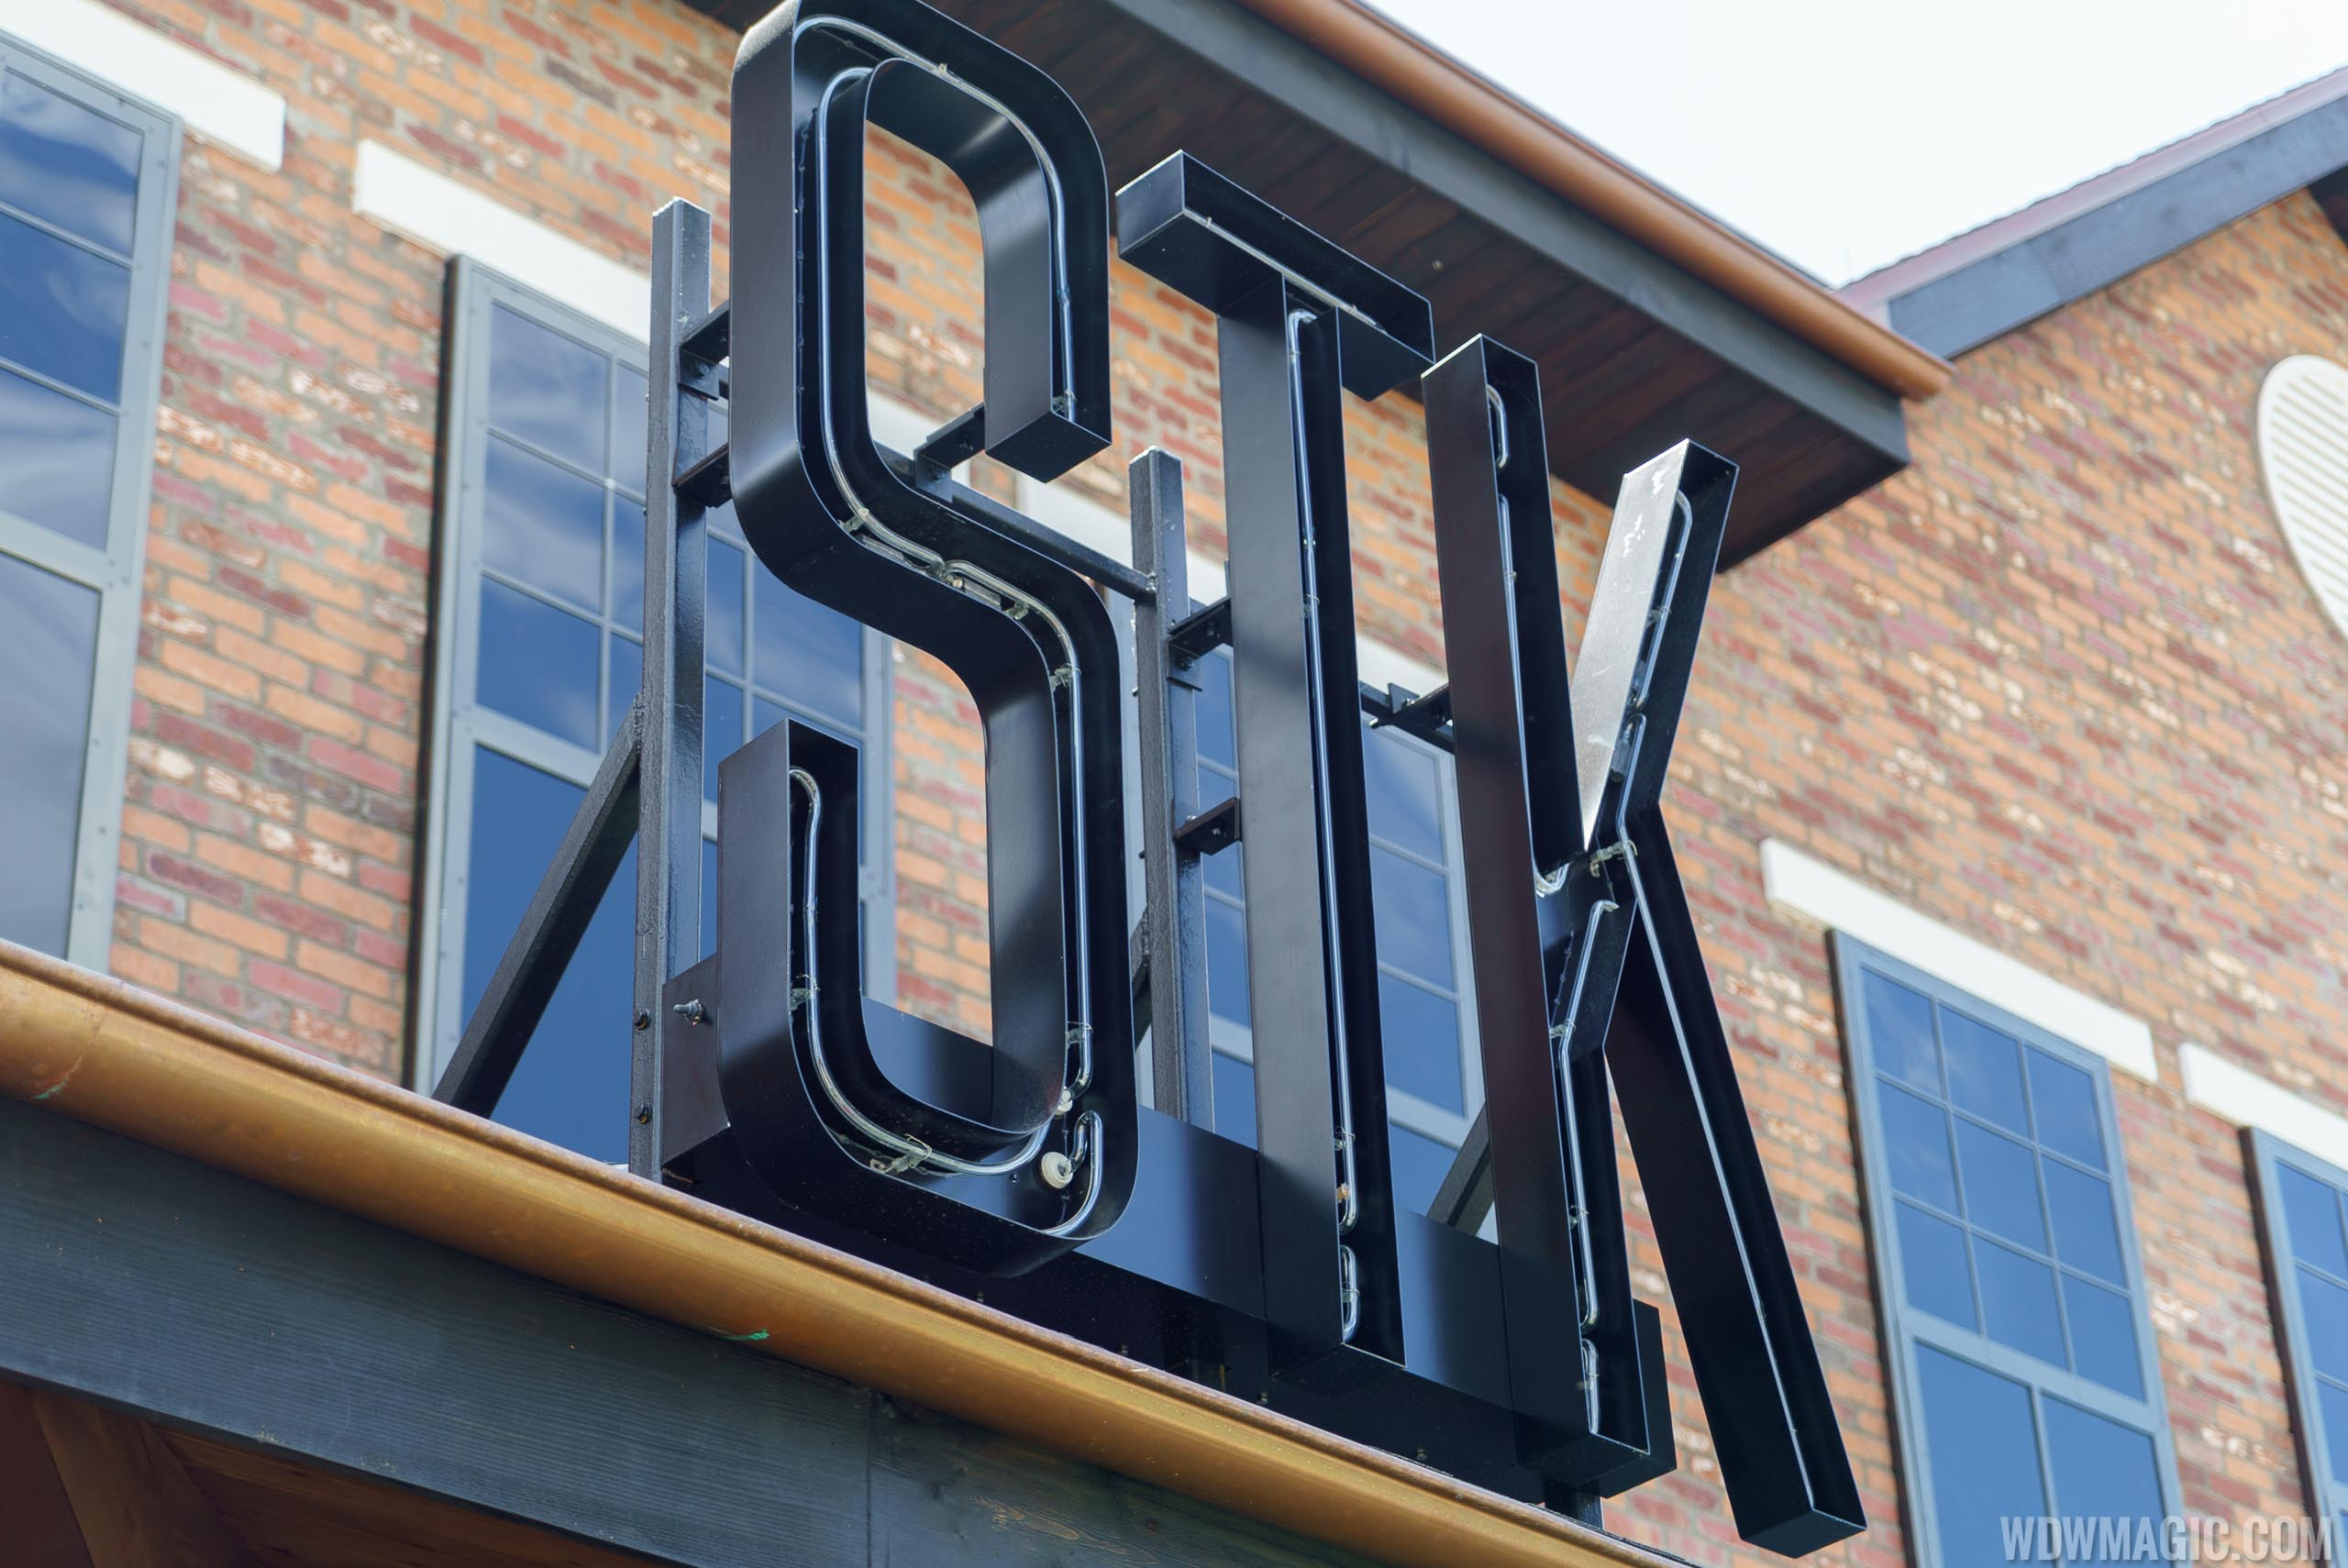 STK Orlando construction